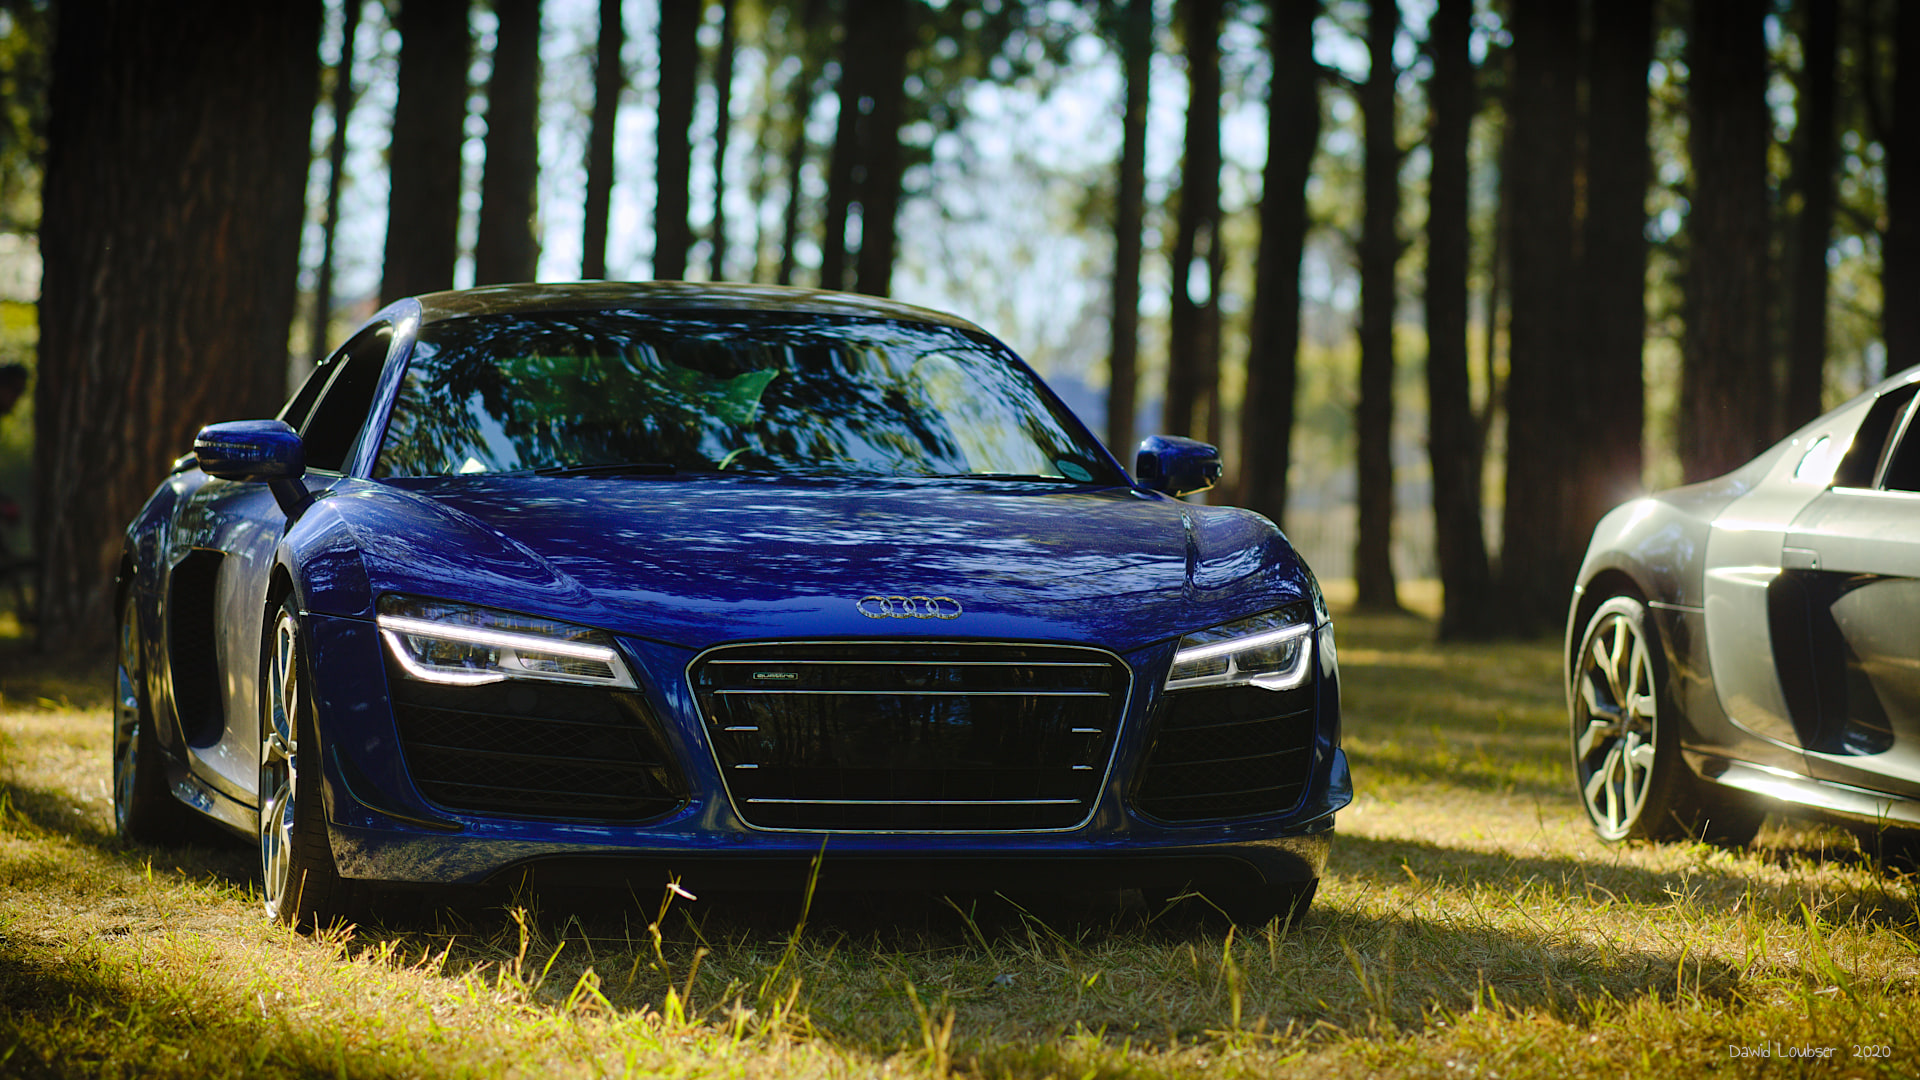 000370-r8s-forest-tyron-front-right.jpg